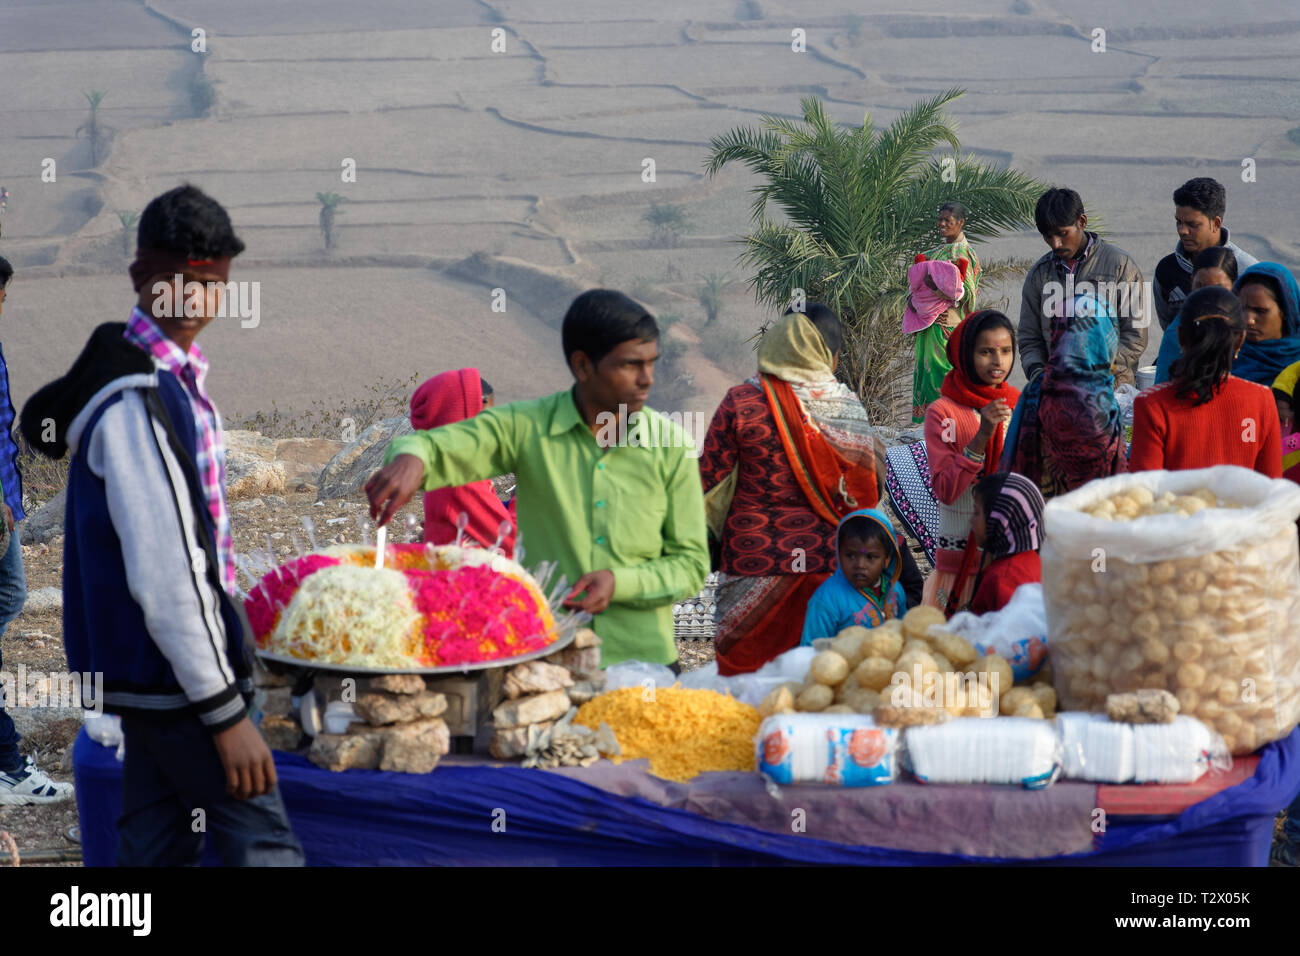 Local people selling street food in an Indian hilltop rura - Stock Image